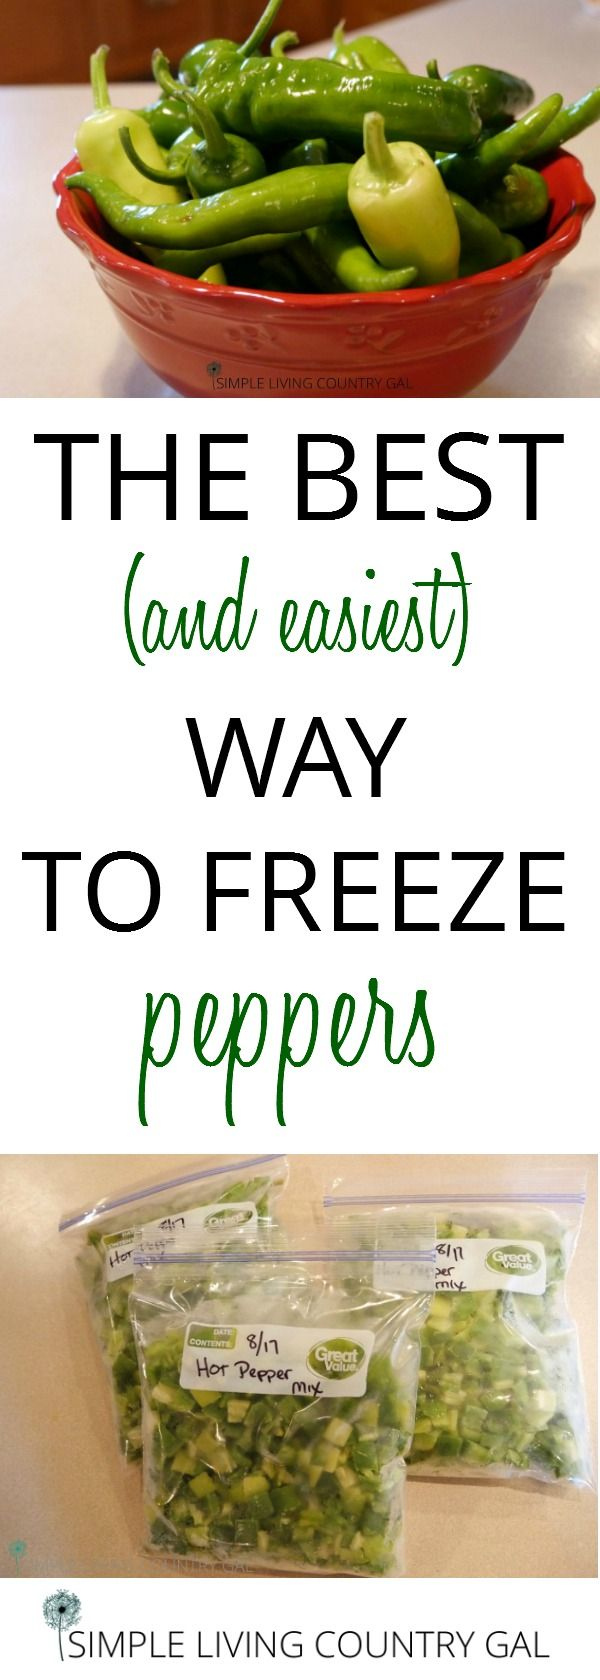 Follow these tips for a fool proof way to freeze your peppers. No more icy boulders. Now you can have fresh veggies in winter without freezer burn!